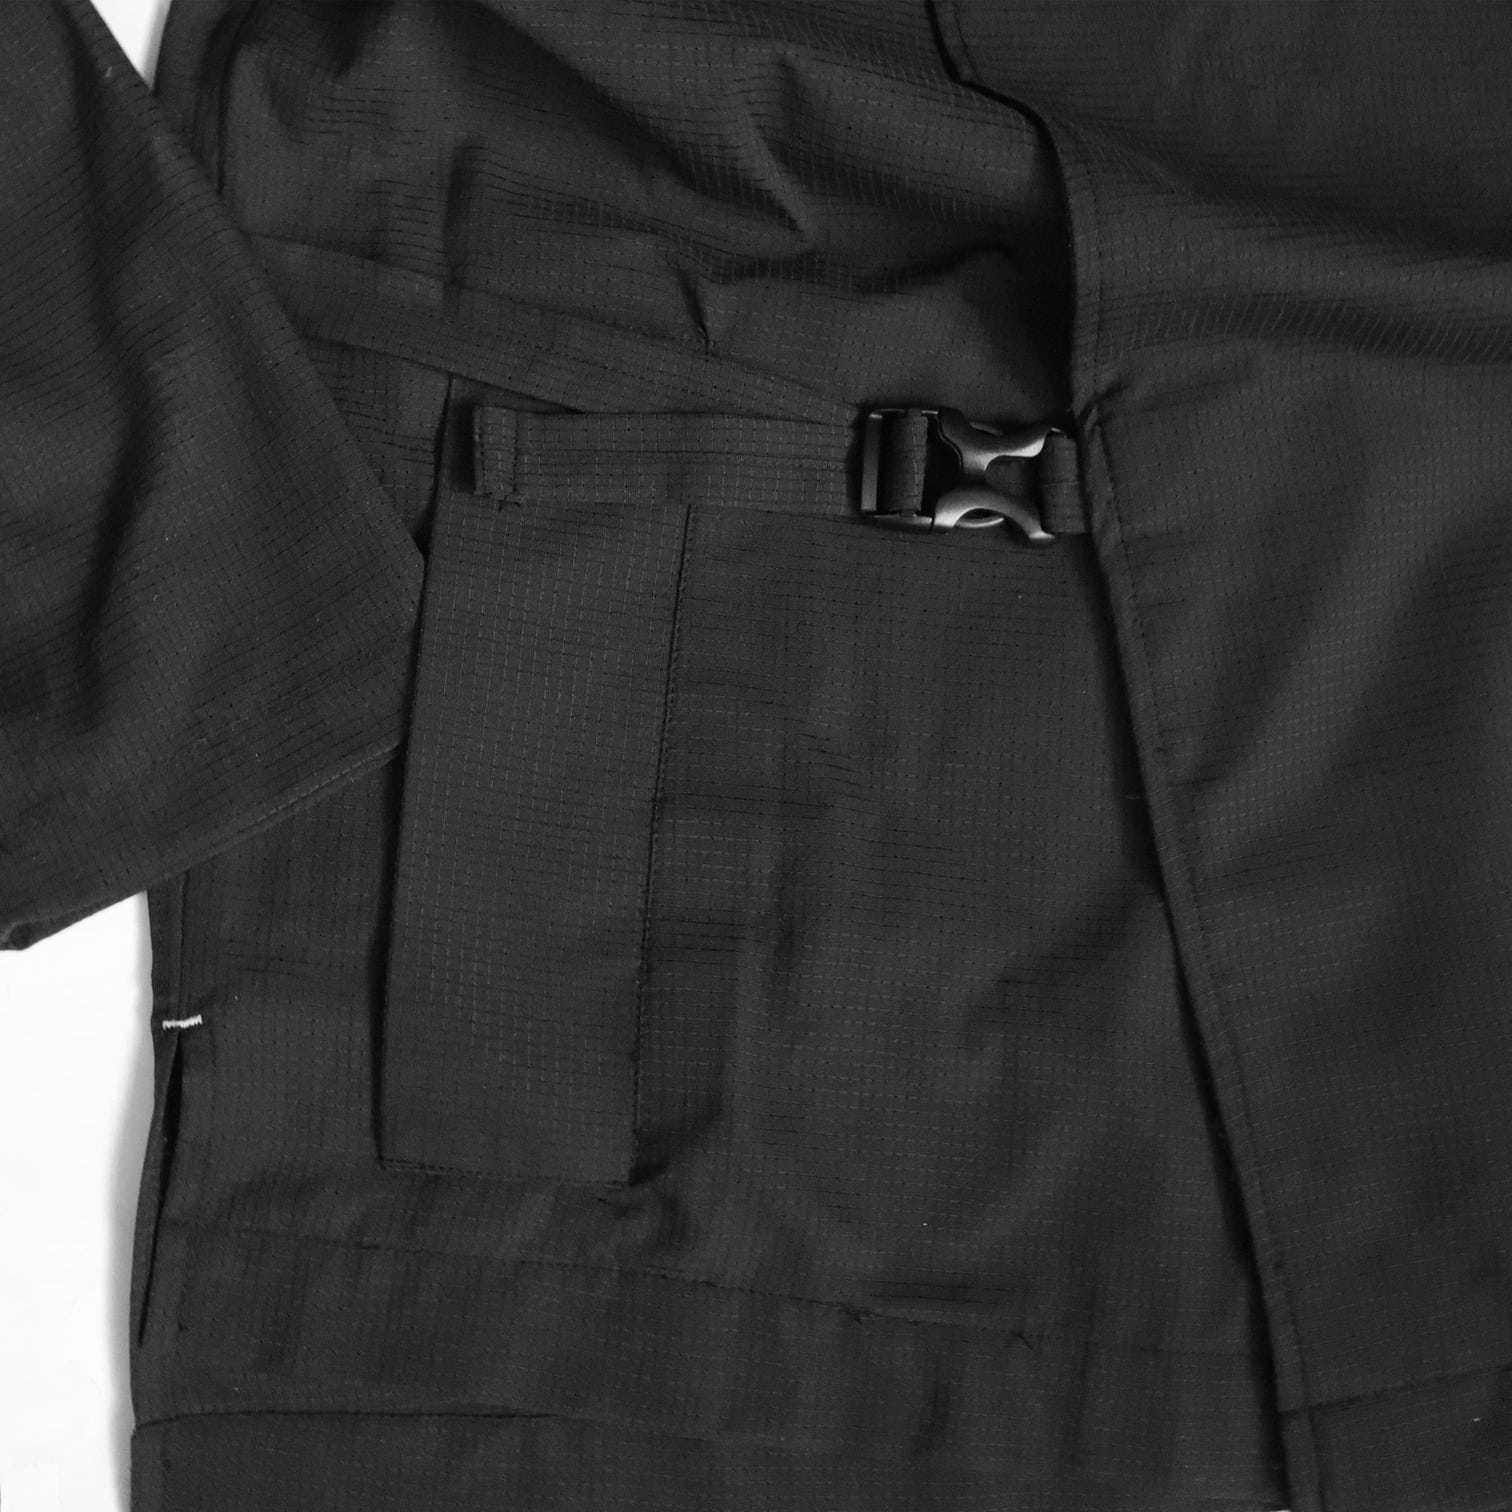 DYCTEAM-See-Through Trench Coat-Buckle-Fastening